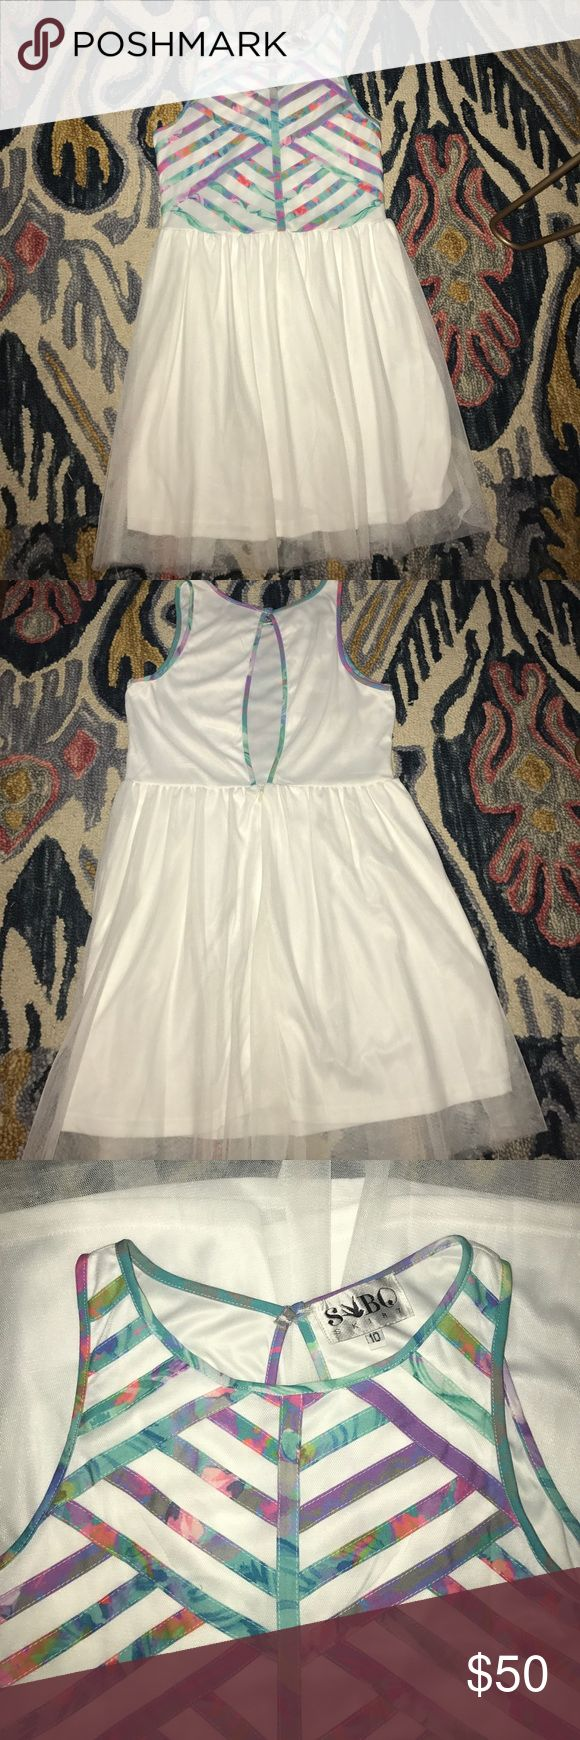 Sabo Skirt Colorful Dress White dress with tulle bottom, cut out back, and colorful stripes going across the chest. It's a Australian 10 but it would fit an extra small. New Without Tags. Sabo Skirt Dresses Mini